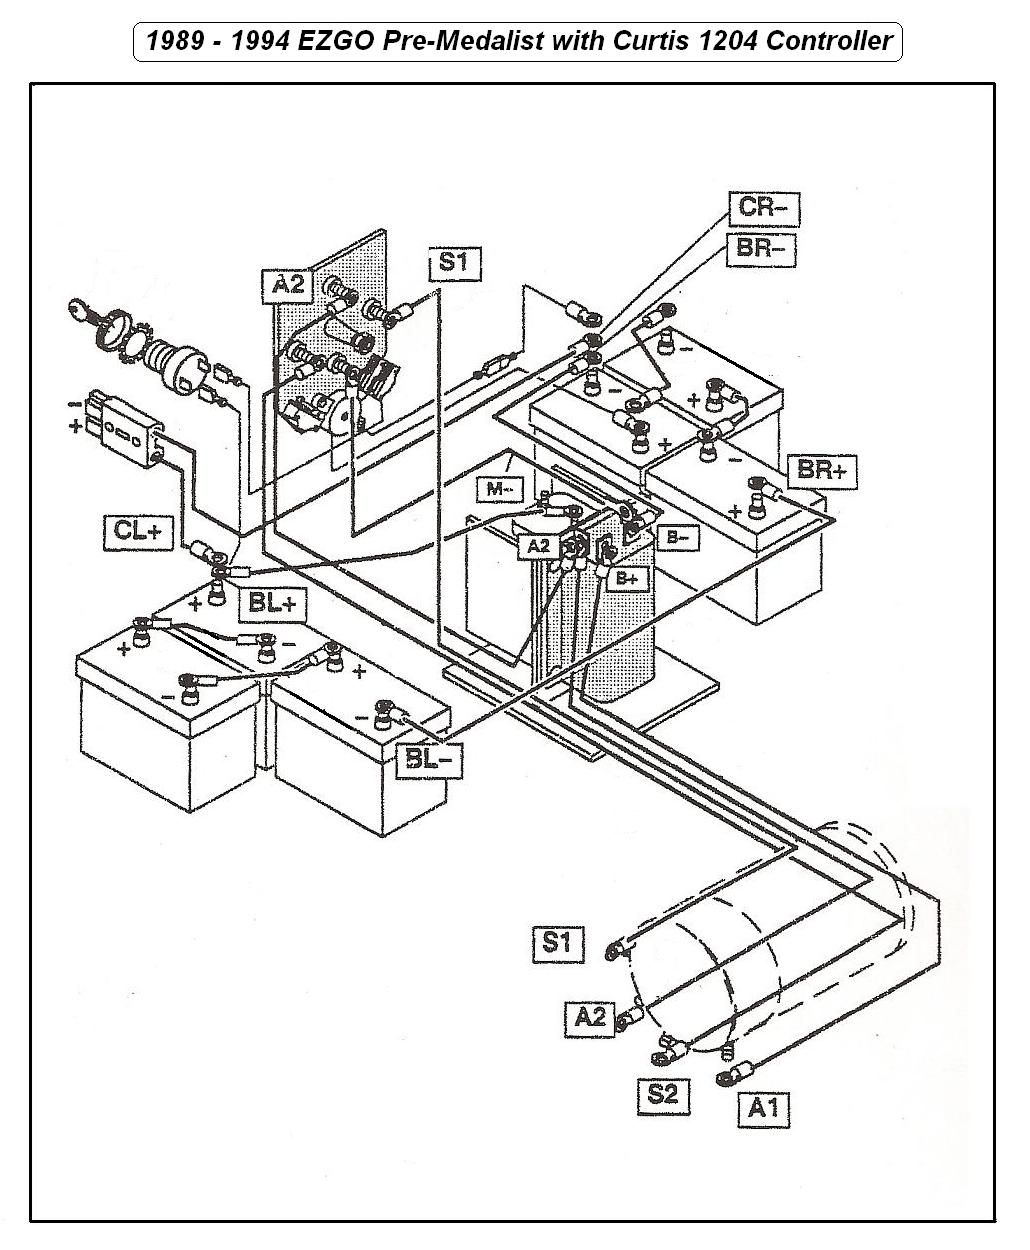 A89_94EZ_Wiring ezgo wiring diagram ez wiring \u2022 wiring diagrams j squared co ezgo controller wiring diagram at mifinder.co